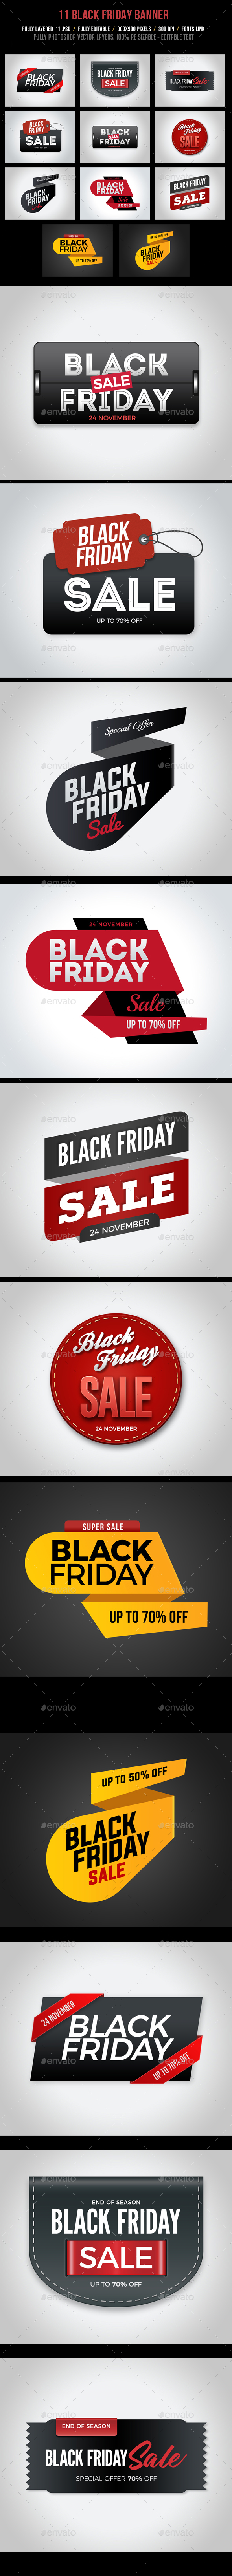 GraphicRiver Black Friday Banners 20955927